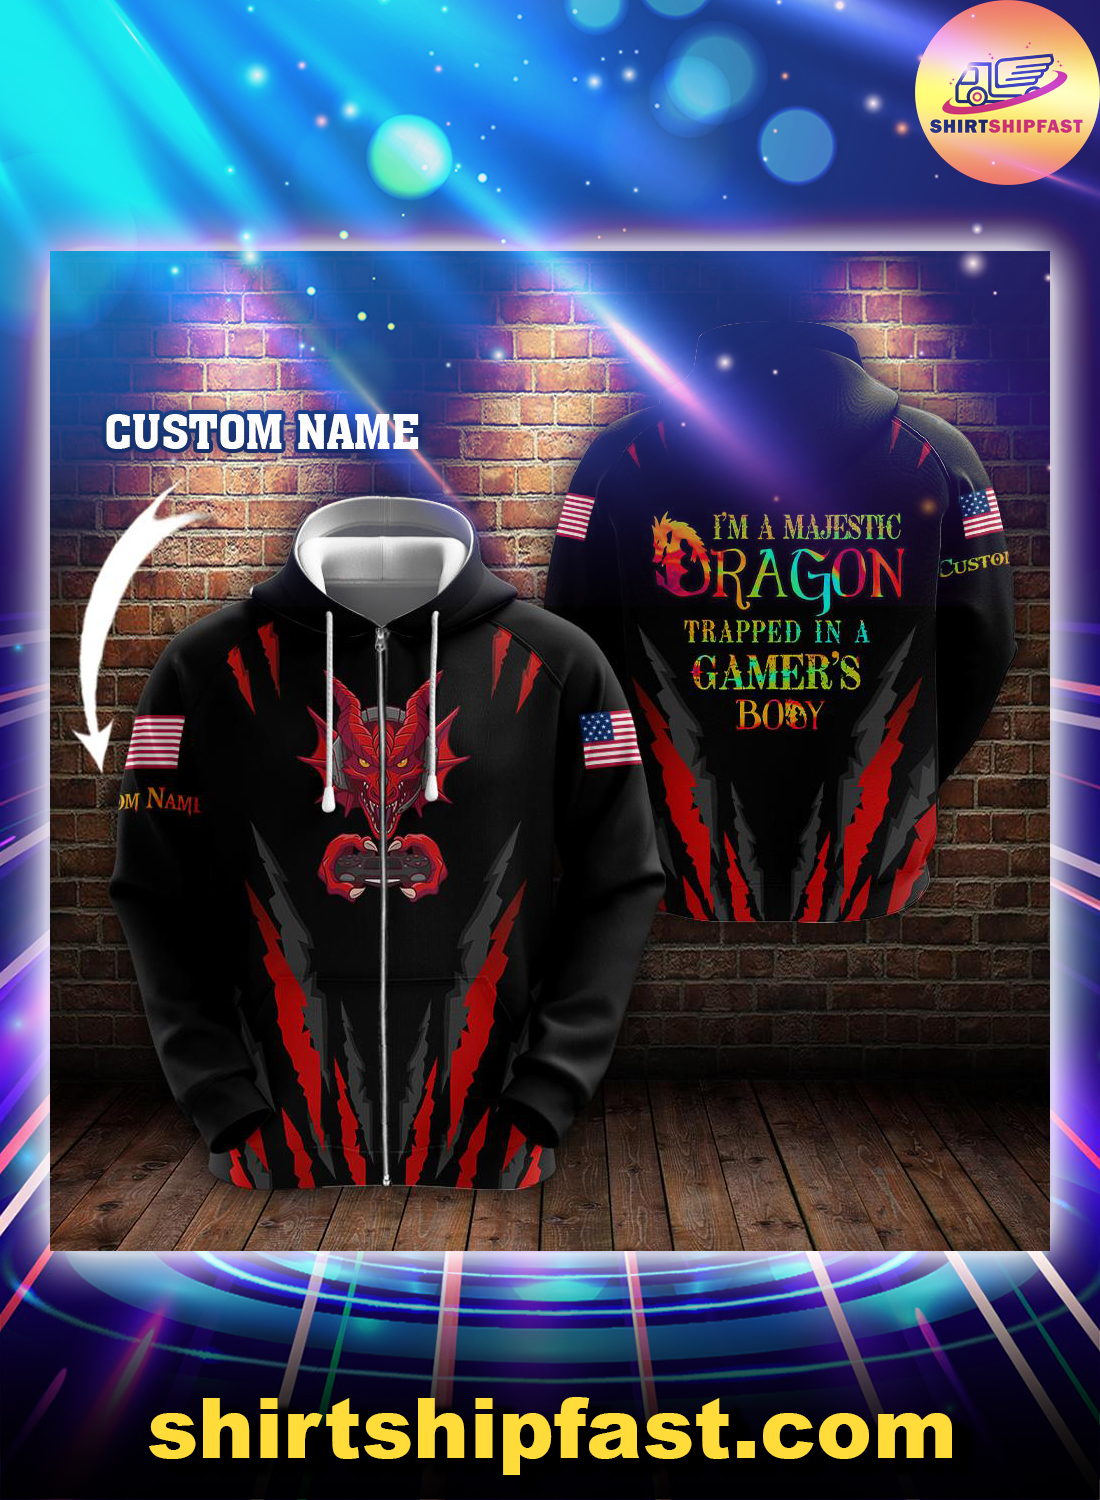 I'm a majestic dragon trapped in a gamer's body custom name 3d zip hoodie